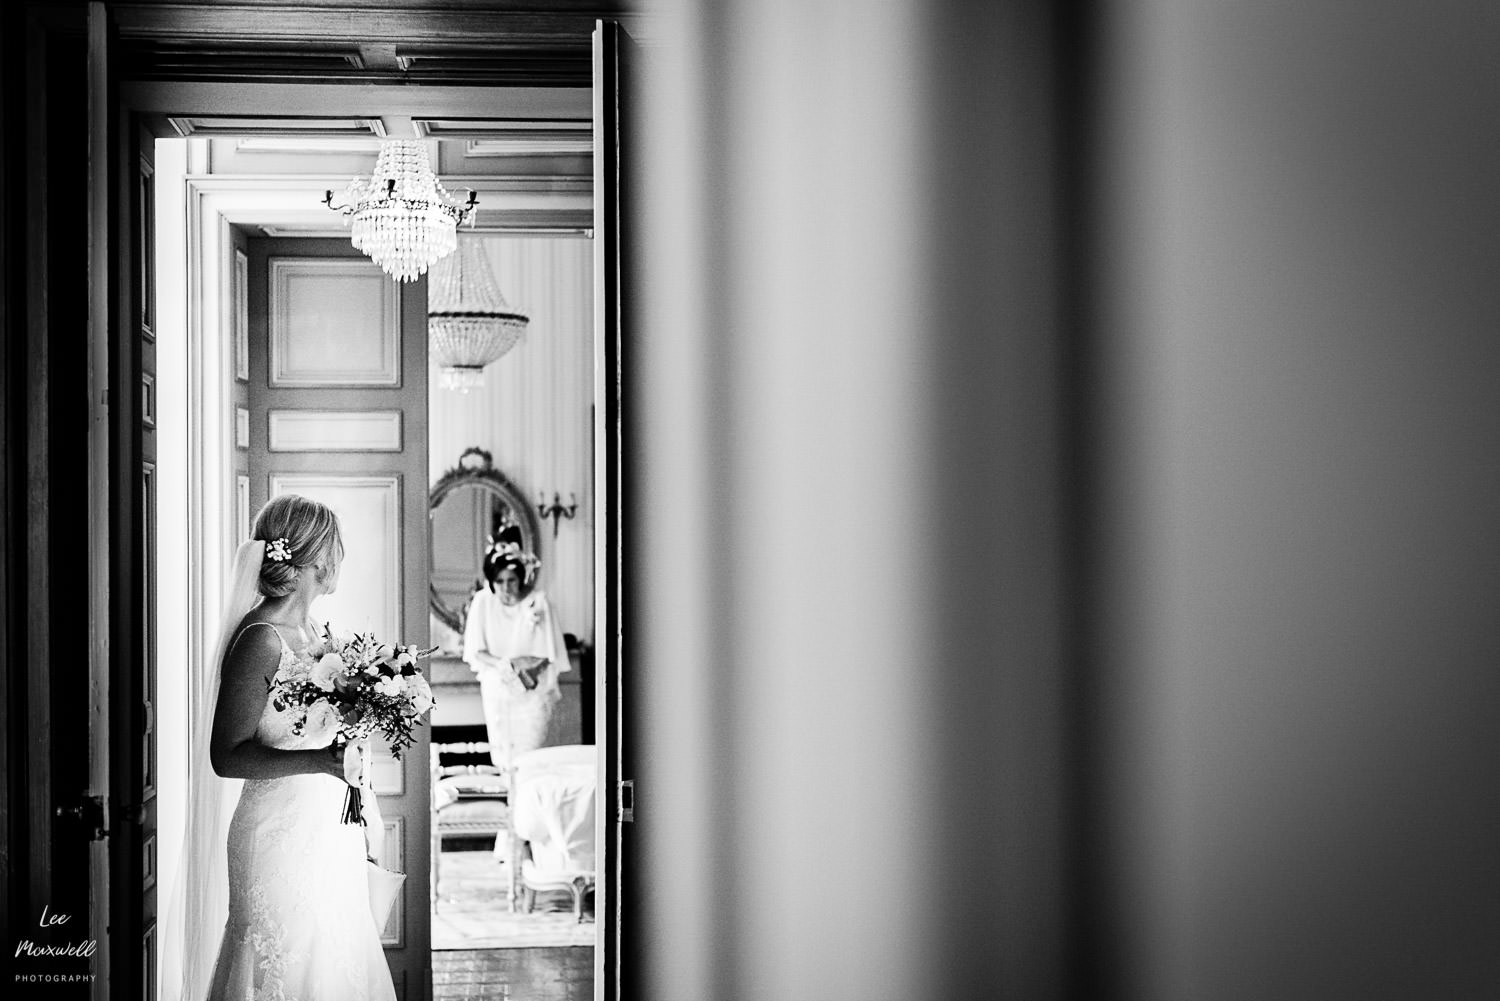 Mum and bride leaving room